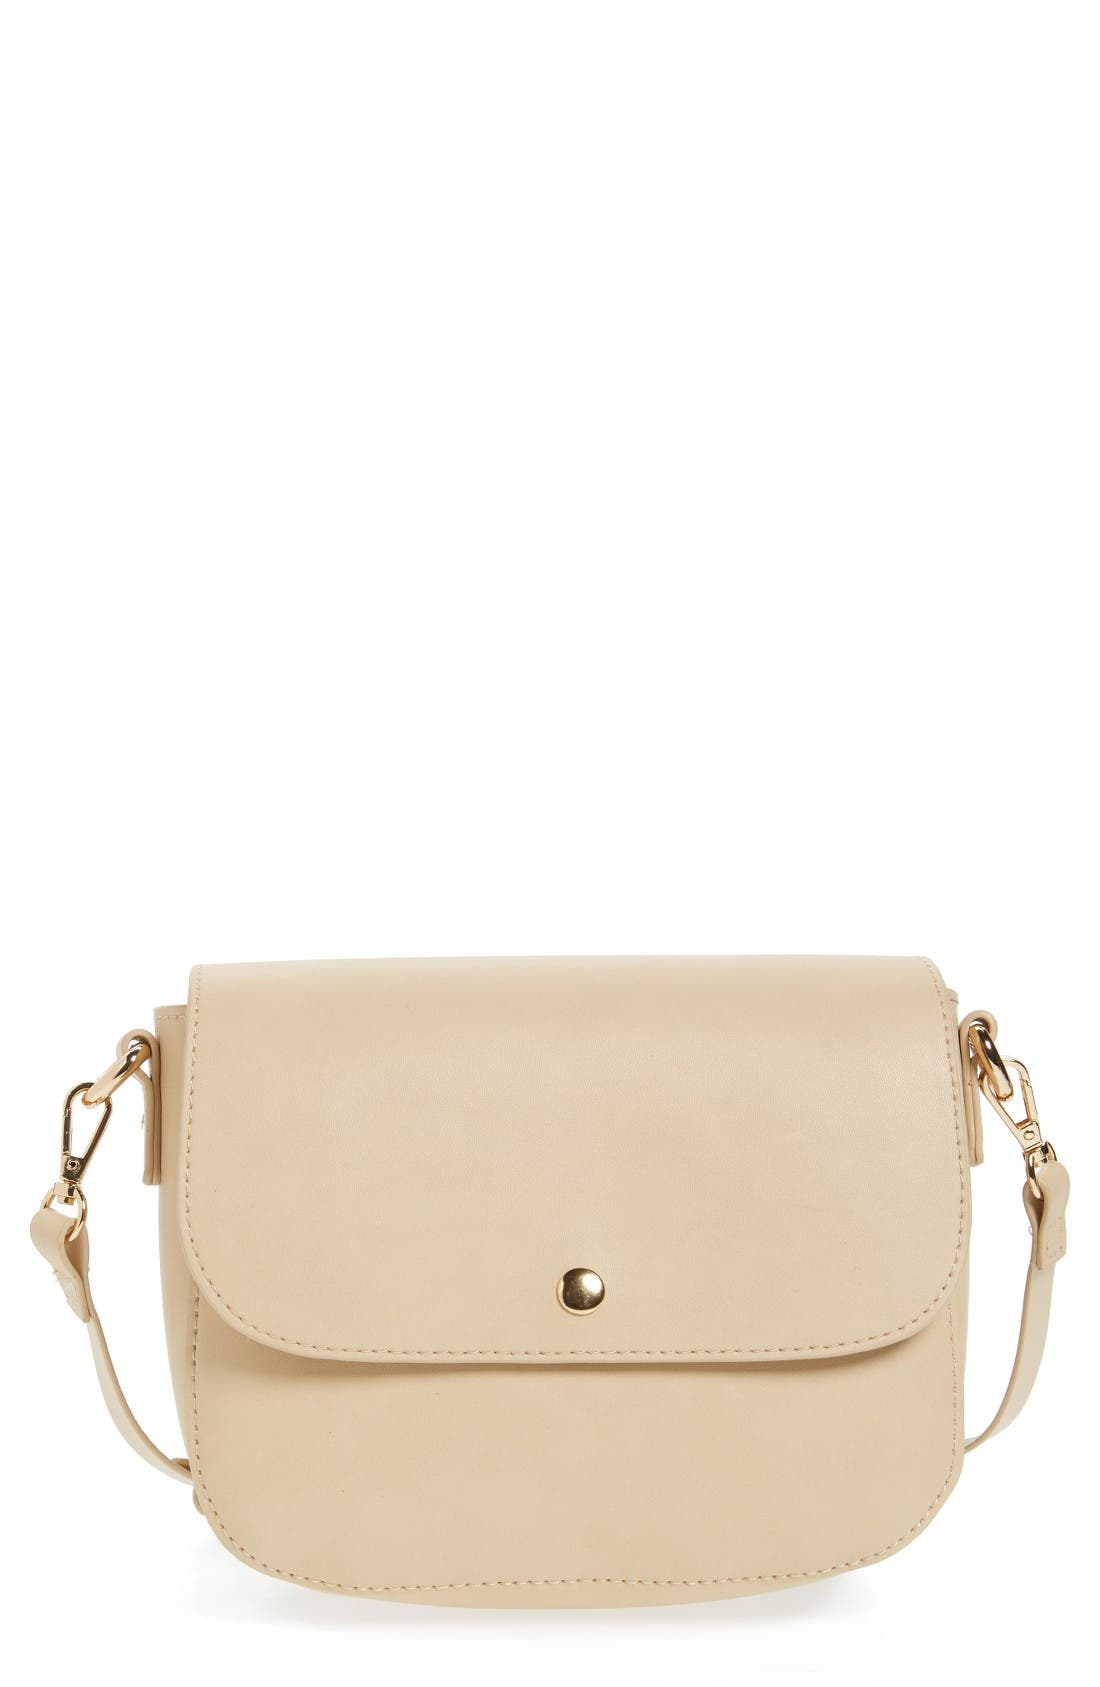 Minimal Faux Leather Crossbody Bag,                             Main thumbnail 1, color,                             Beige